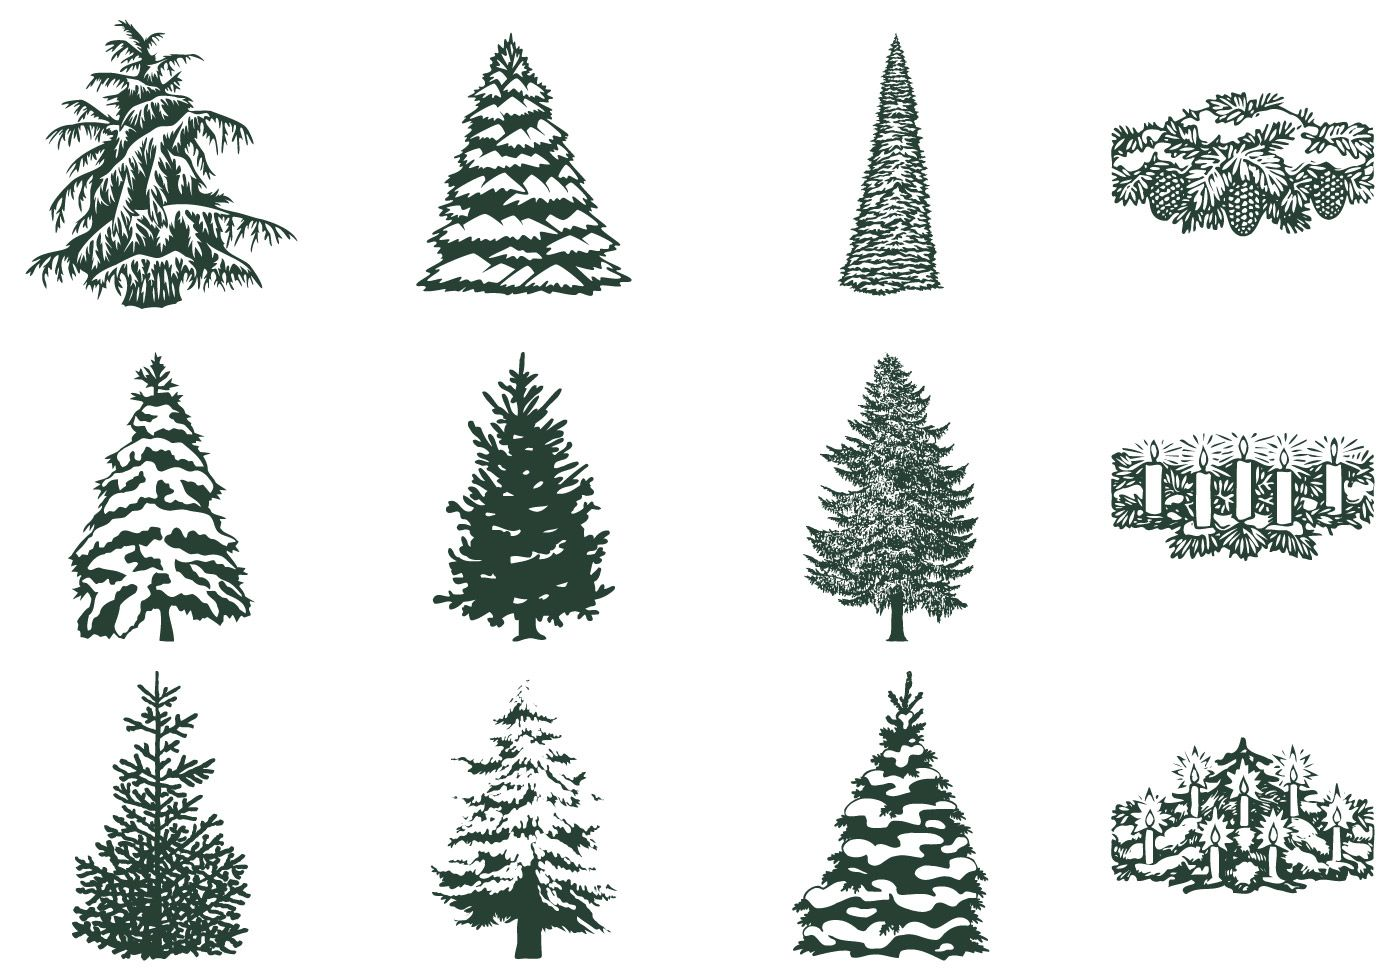 Winter Tree Brush And Candle Brush Pack Winter Trees Tree Winter